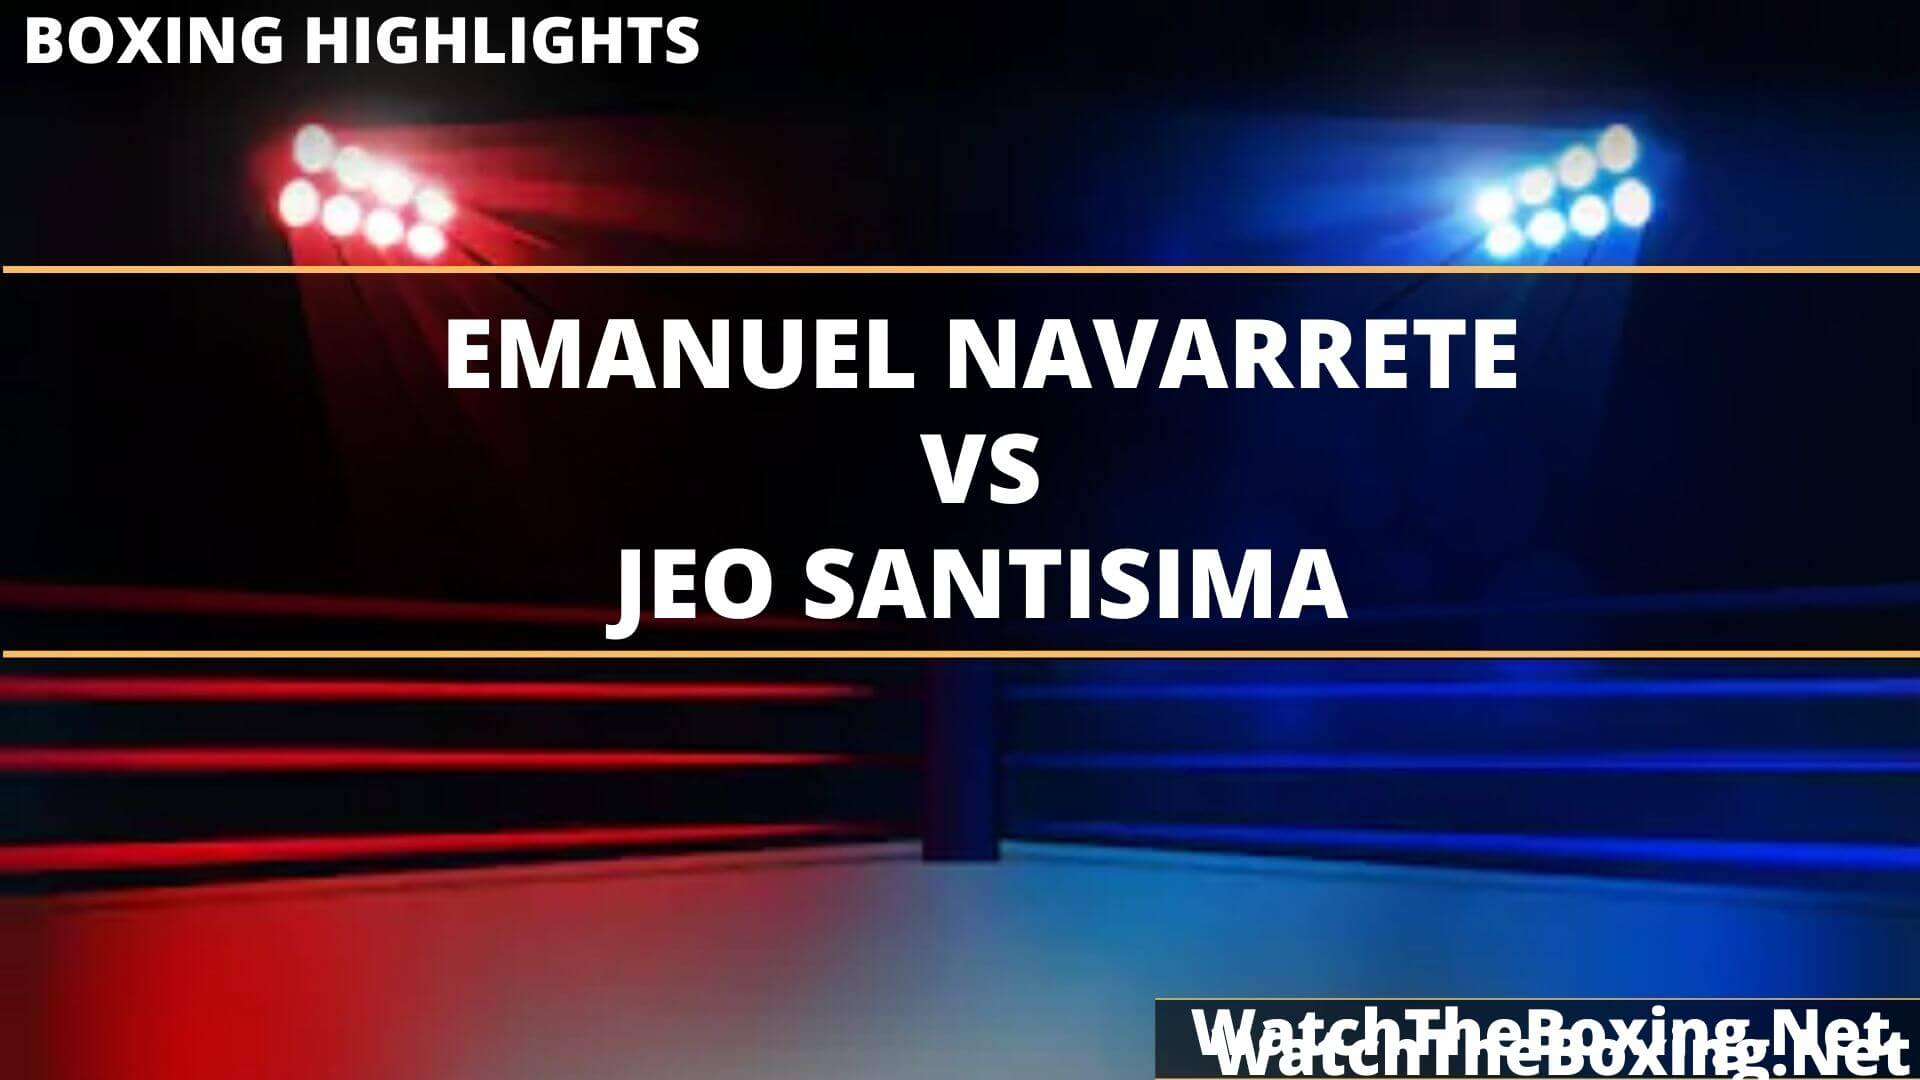 Emanuel Navarrete Vs Jeo Santisima Highlights 2020